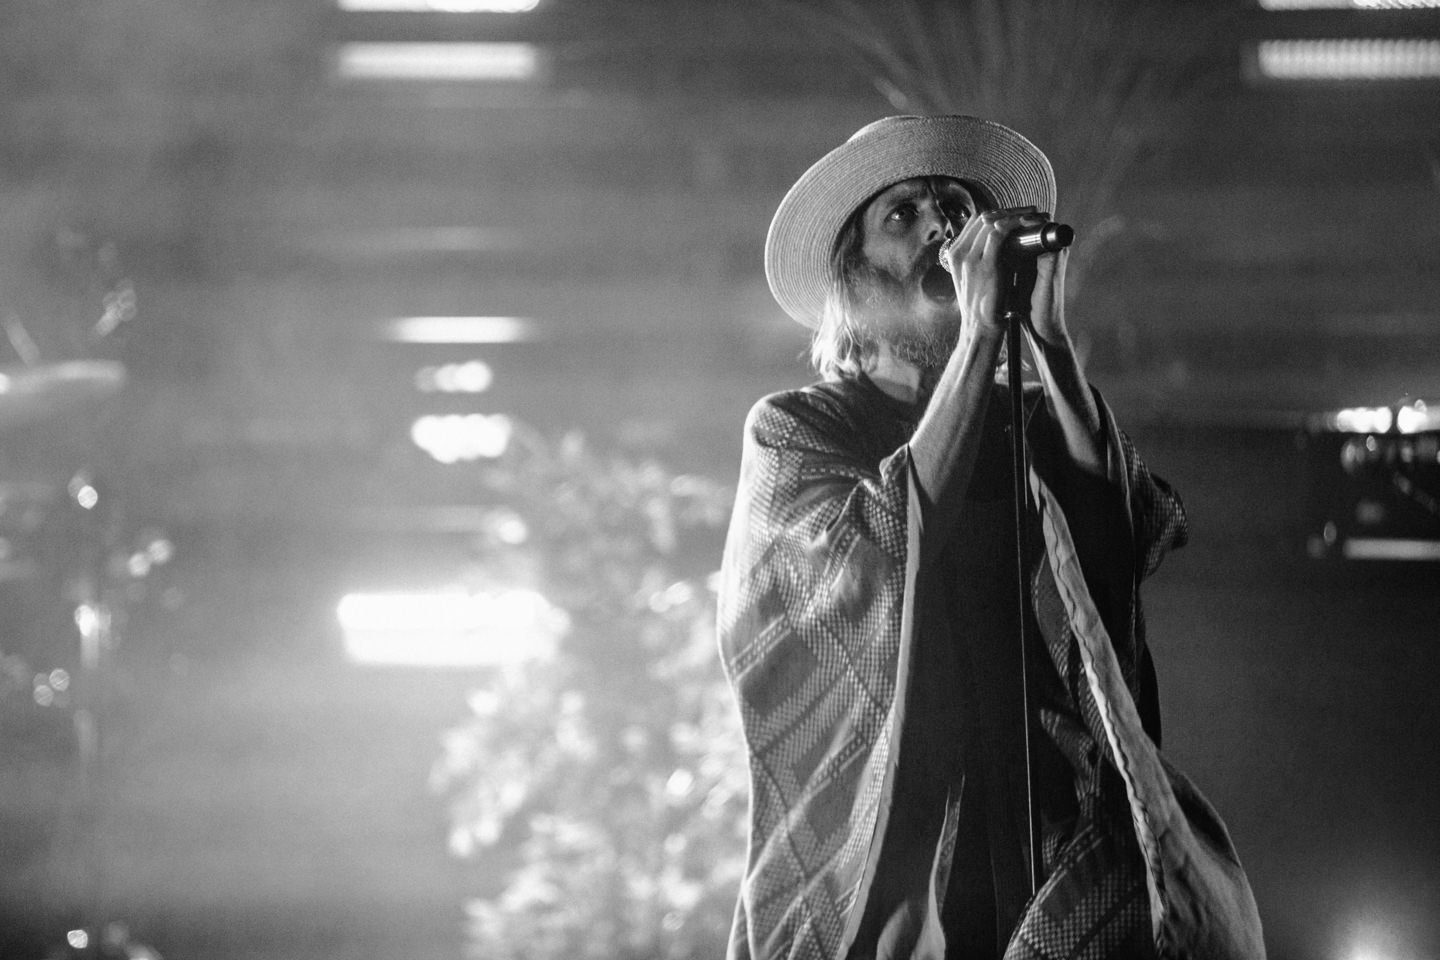 180317-kirby-gladstein-photograpy-awolnation-concert-wilter-los-angeles-9337.jpg